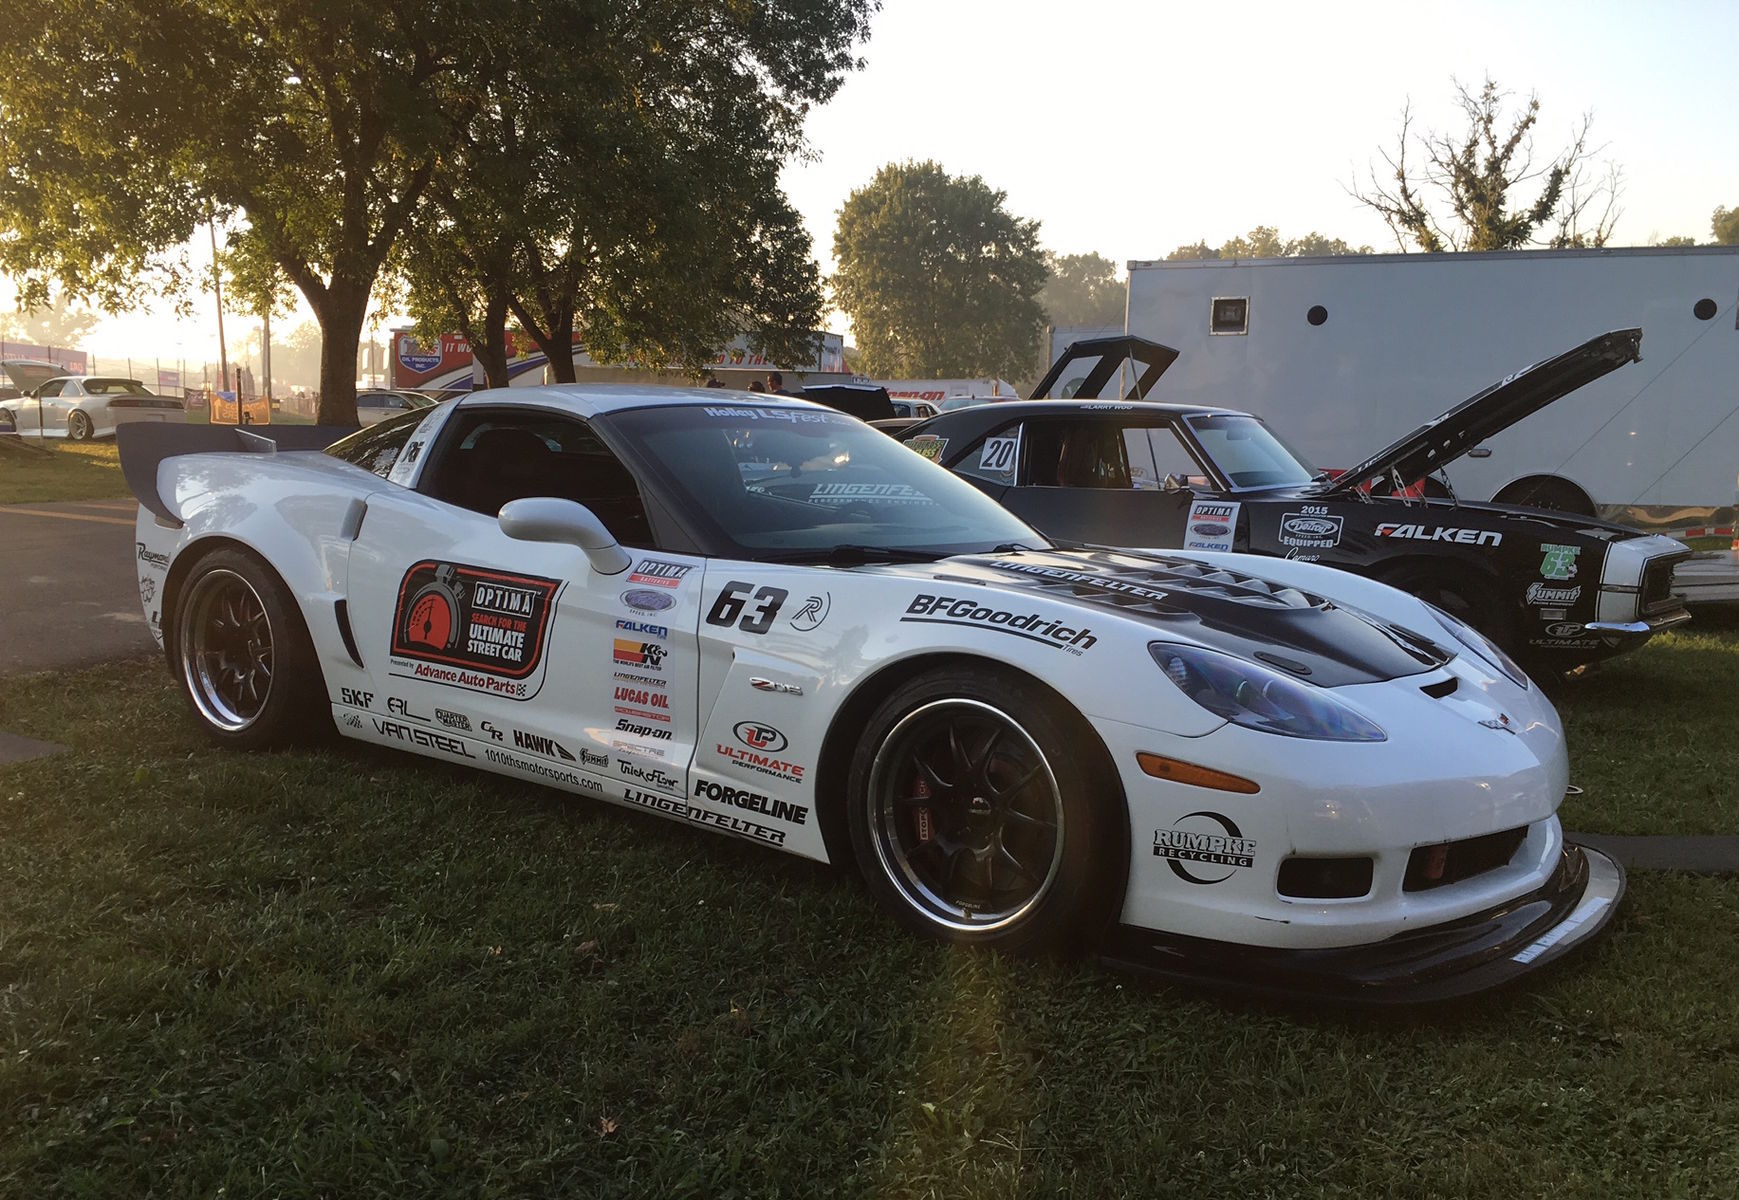 2016 Chevrolet Corvette Z06   Danny Popp and Todd Rumpke Share High Noon Shhotout Victory at 2016 LS Fest